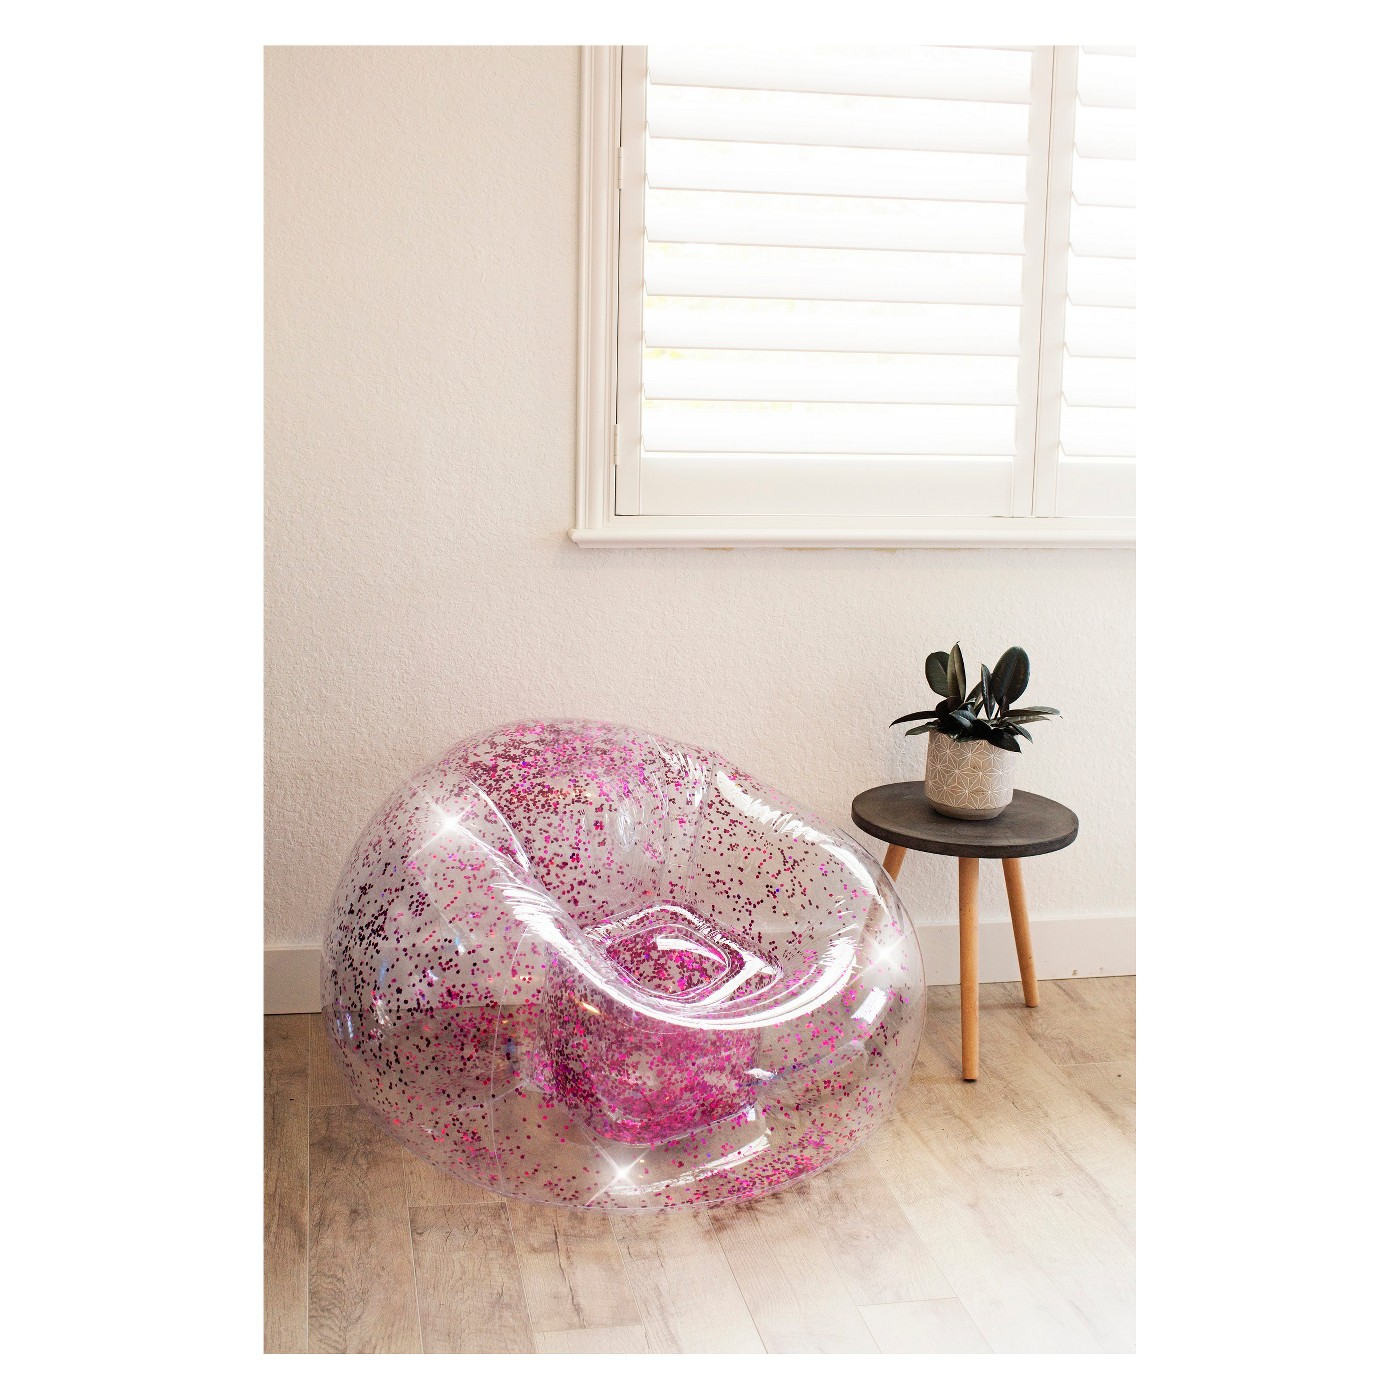 90s Babies These Glittery Inflatable Chairs Are Making A